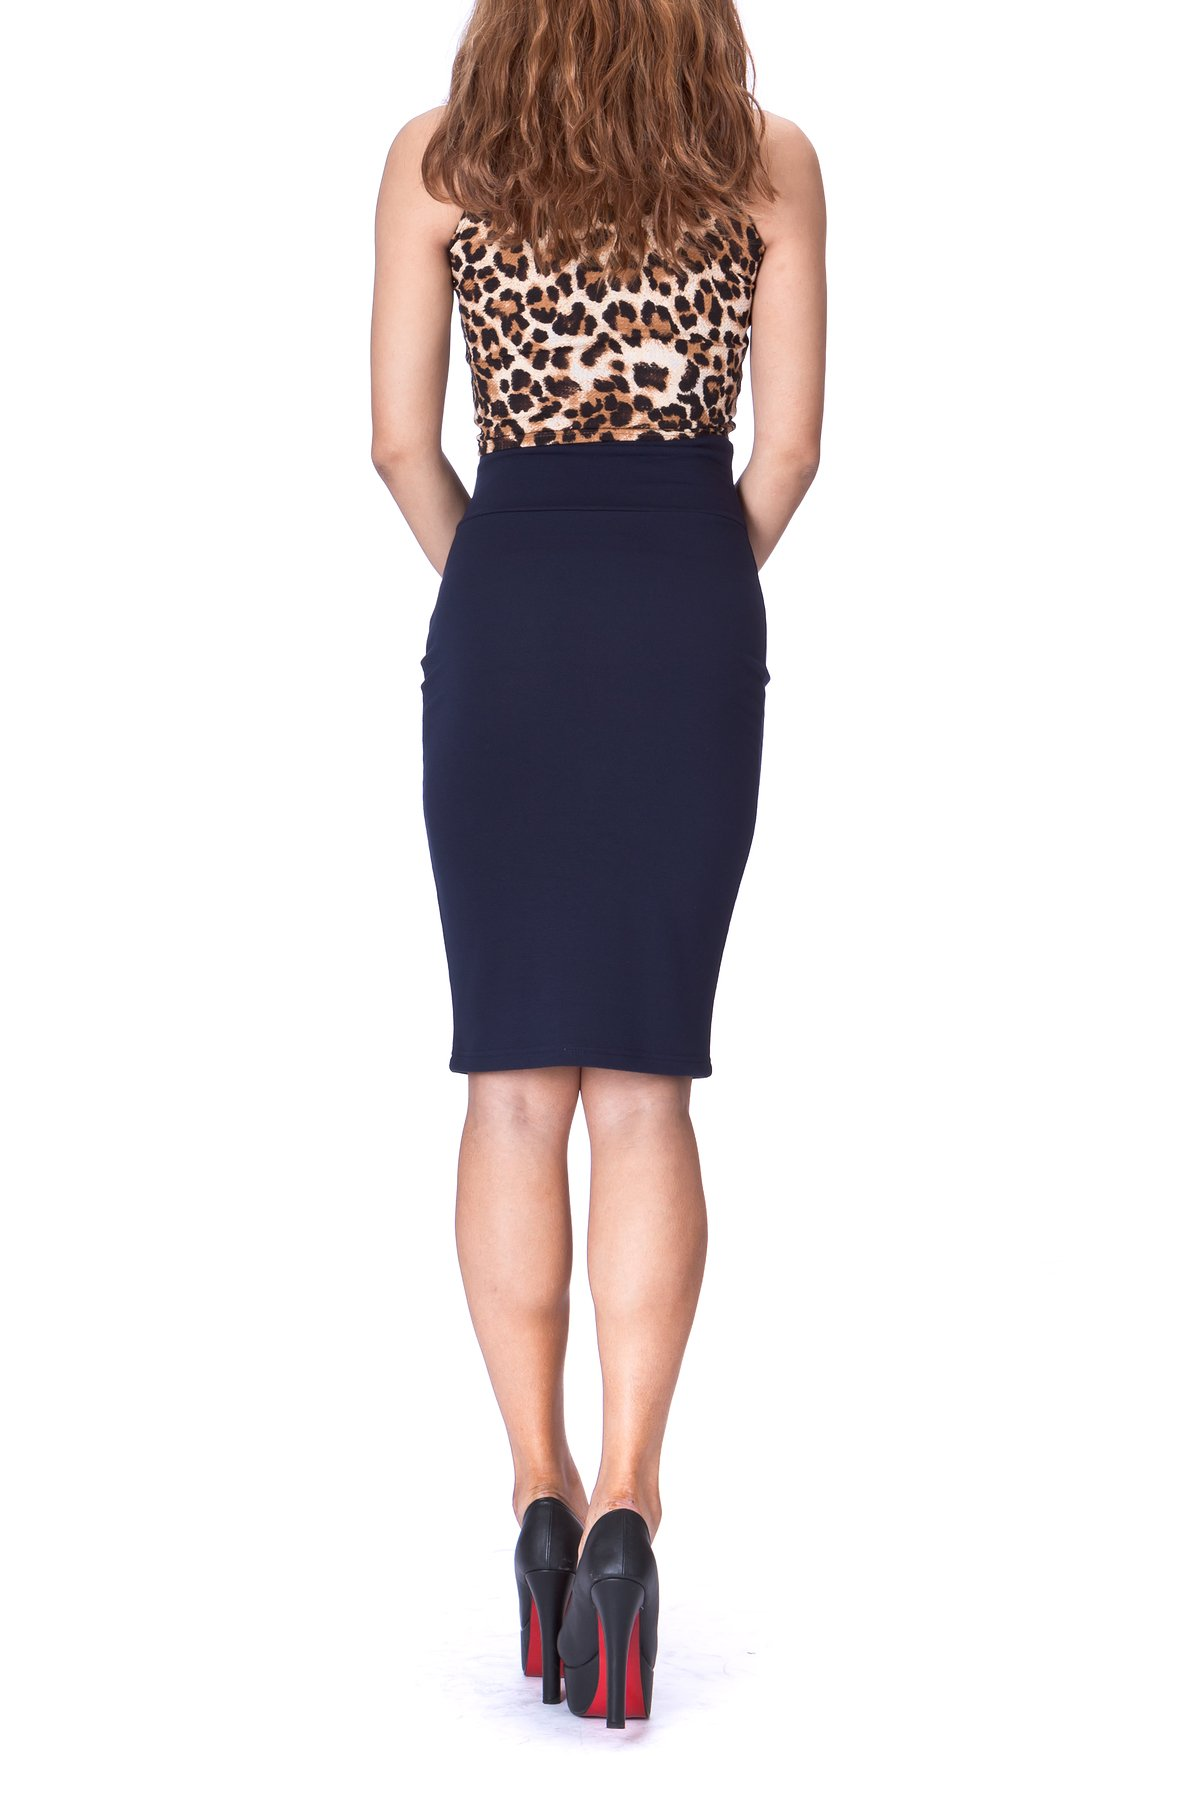 Every Occasion Stretch Pull on Wide High Waist Bodycon Pencil Knee Length Midi Skirt Navy 3